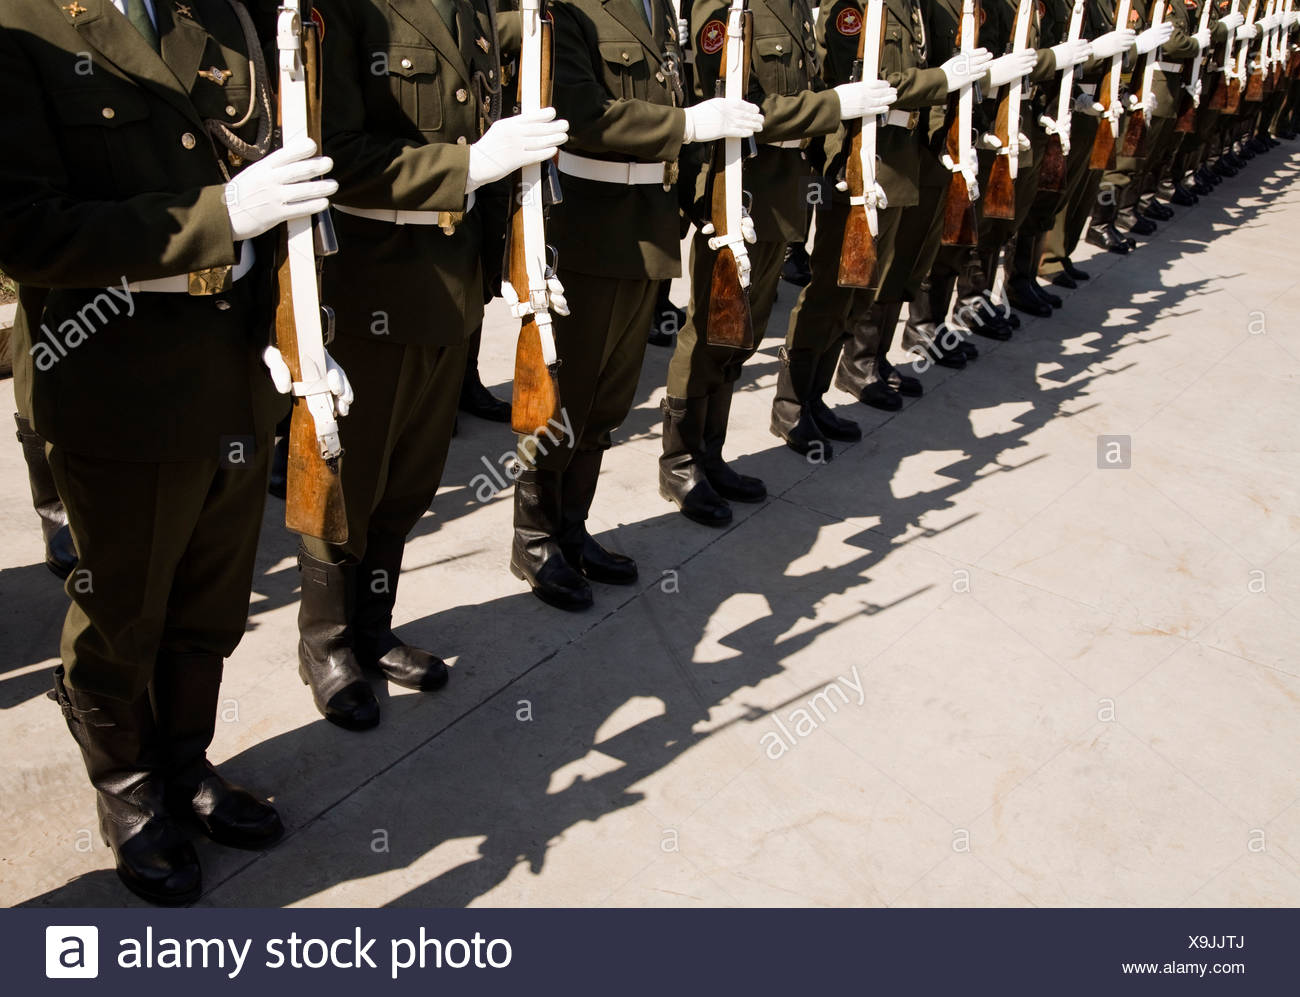 Russian army - Stock Image